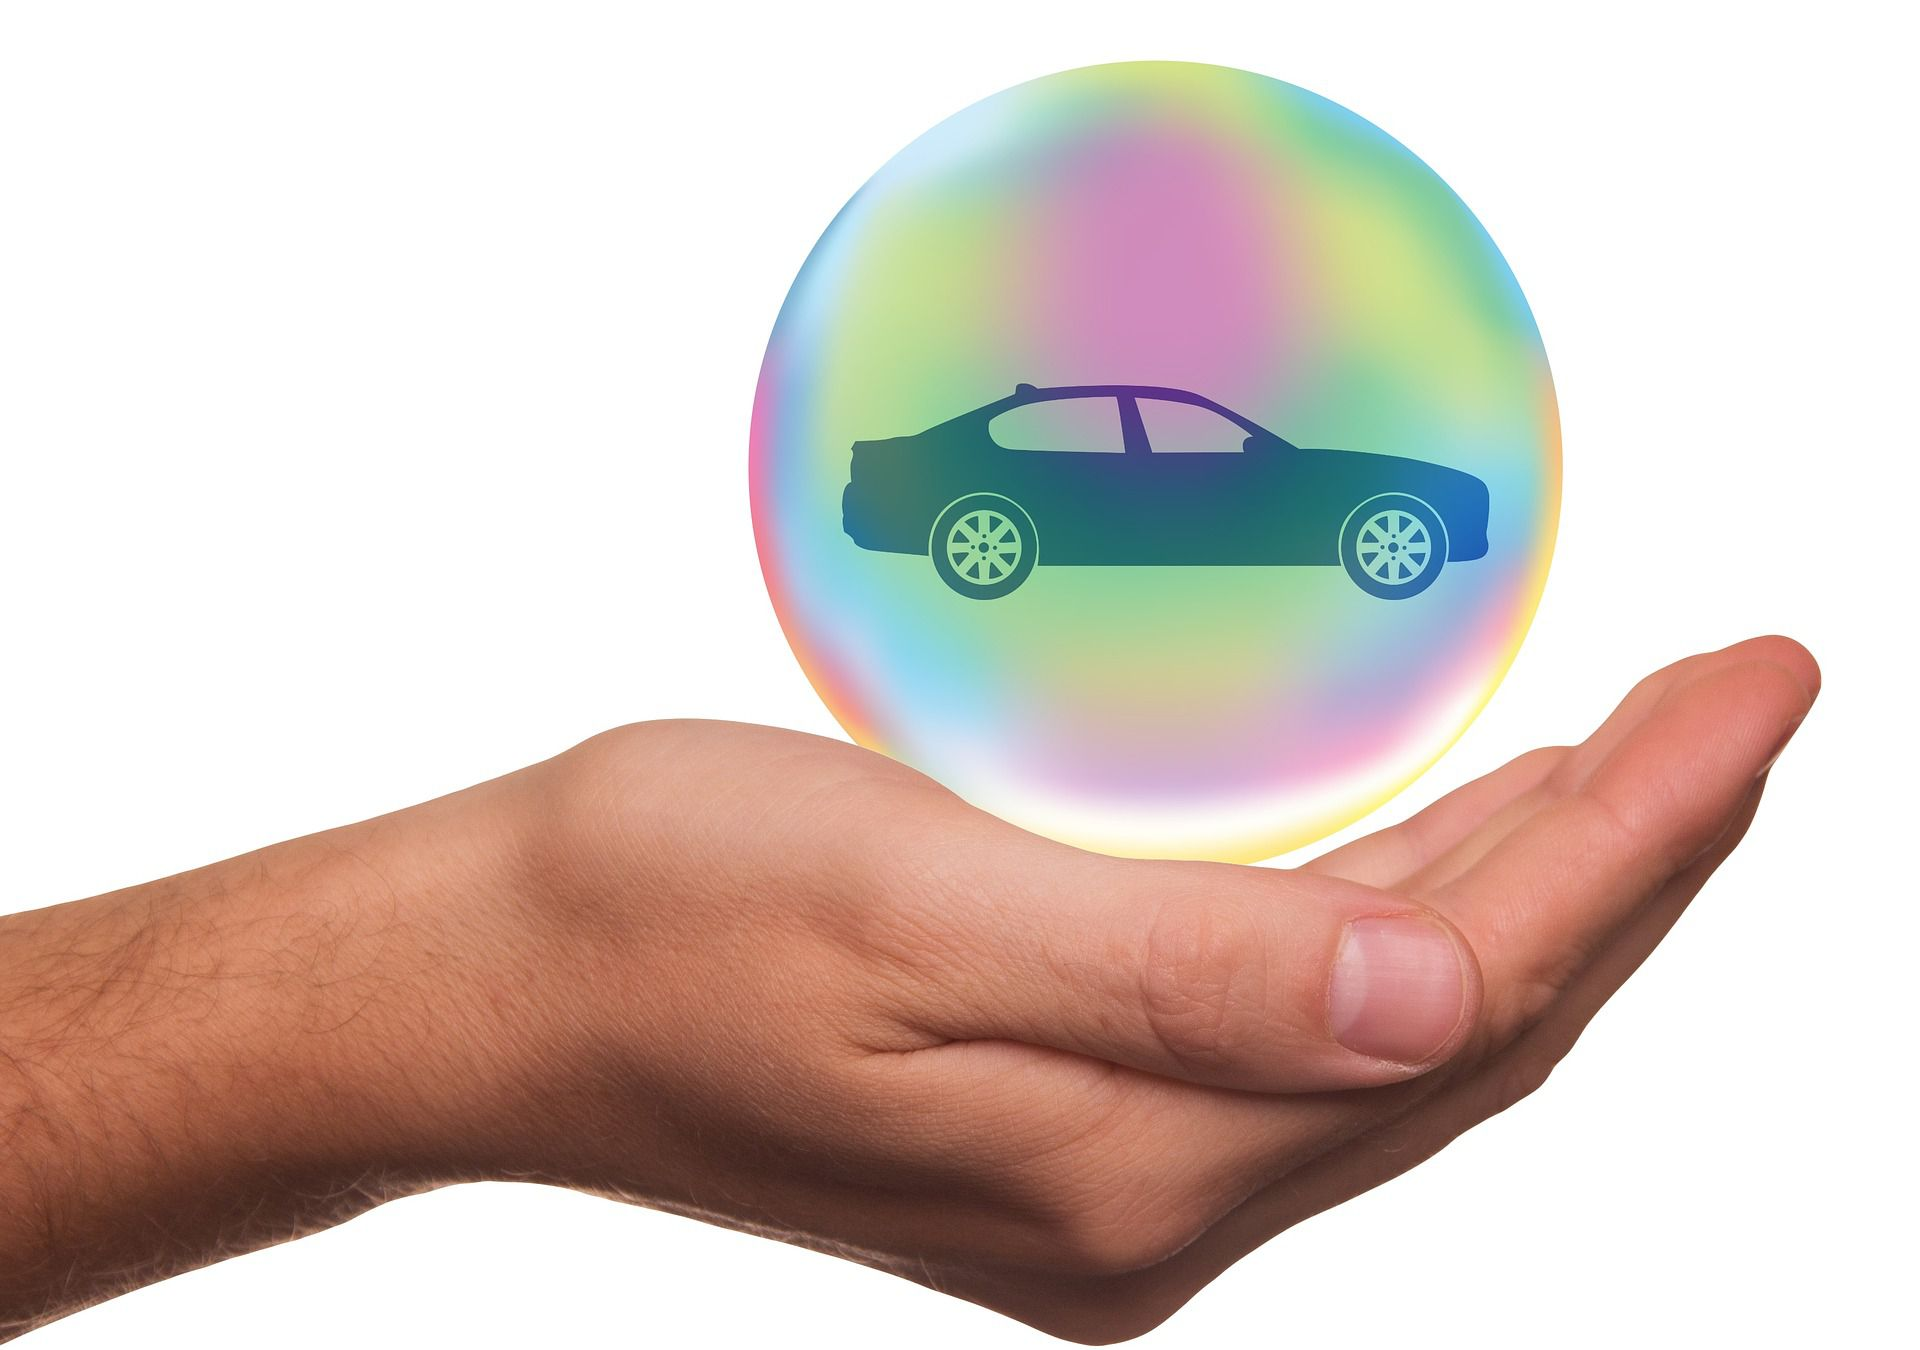 A hand holding a bubble with a car, representing car insurance.